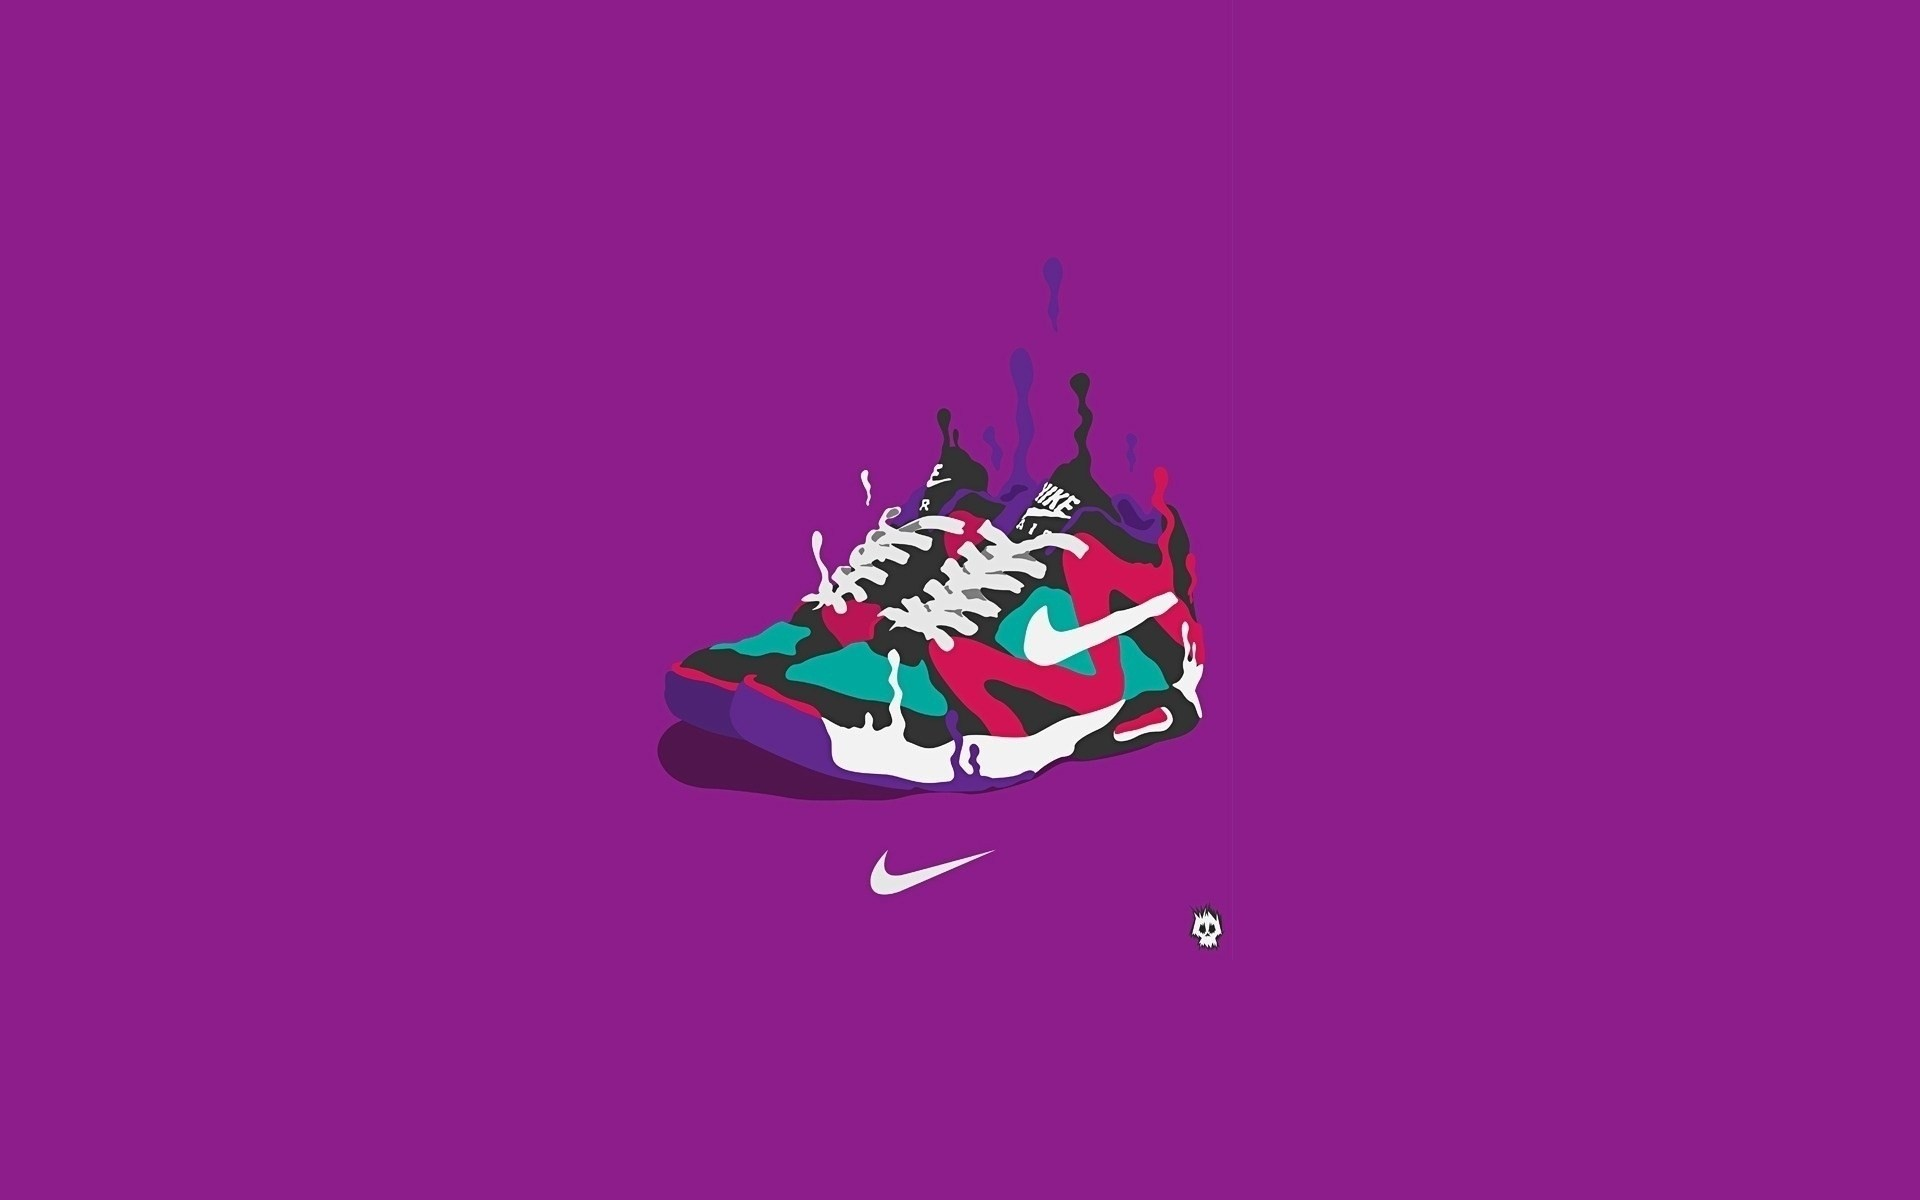 Find out: Nike Basketball Shoes Art wallpaper on hdpicorner.com/.